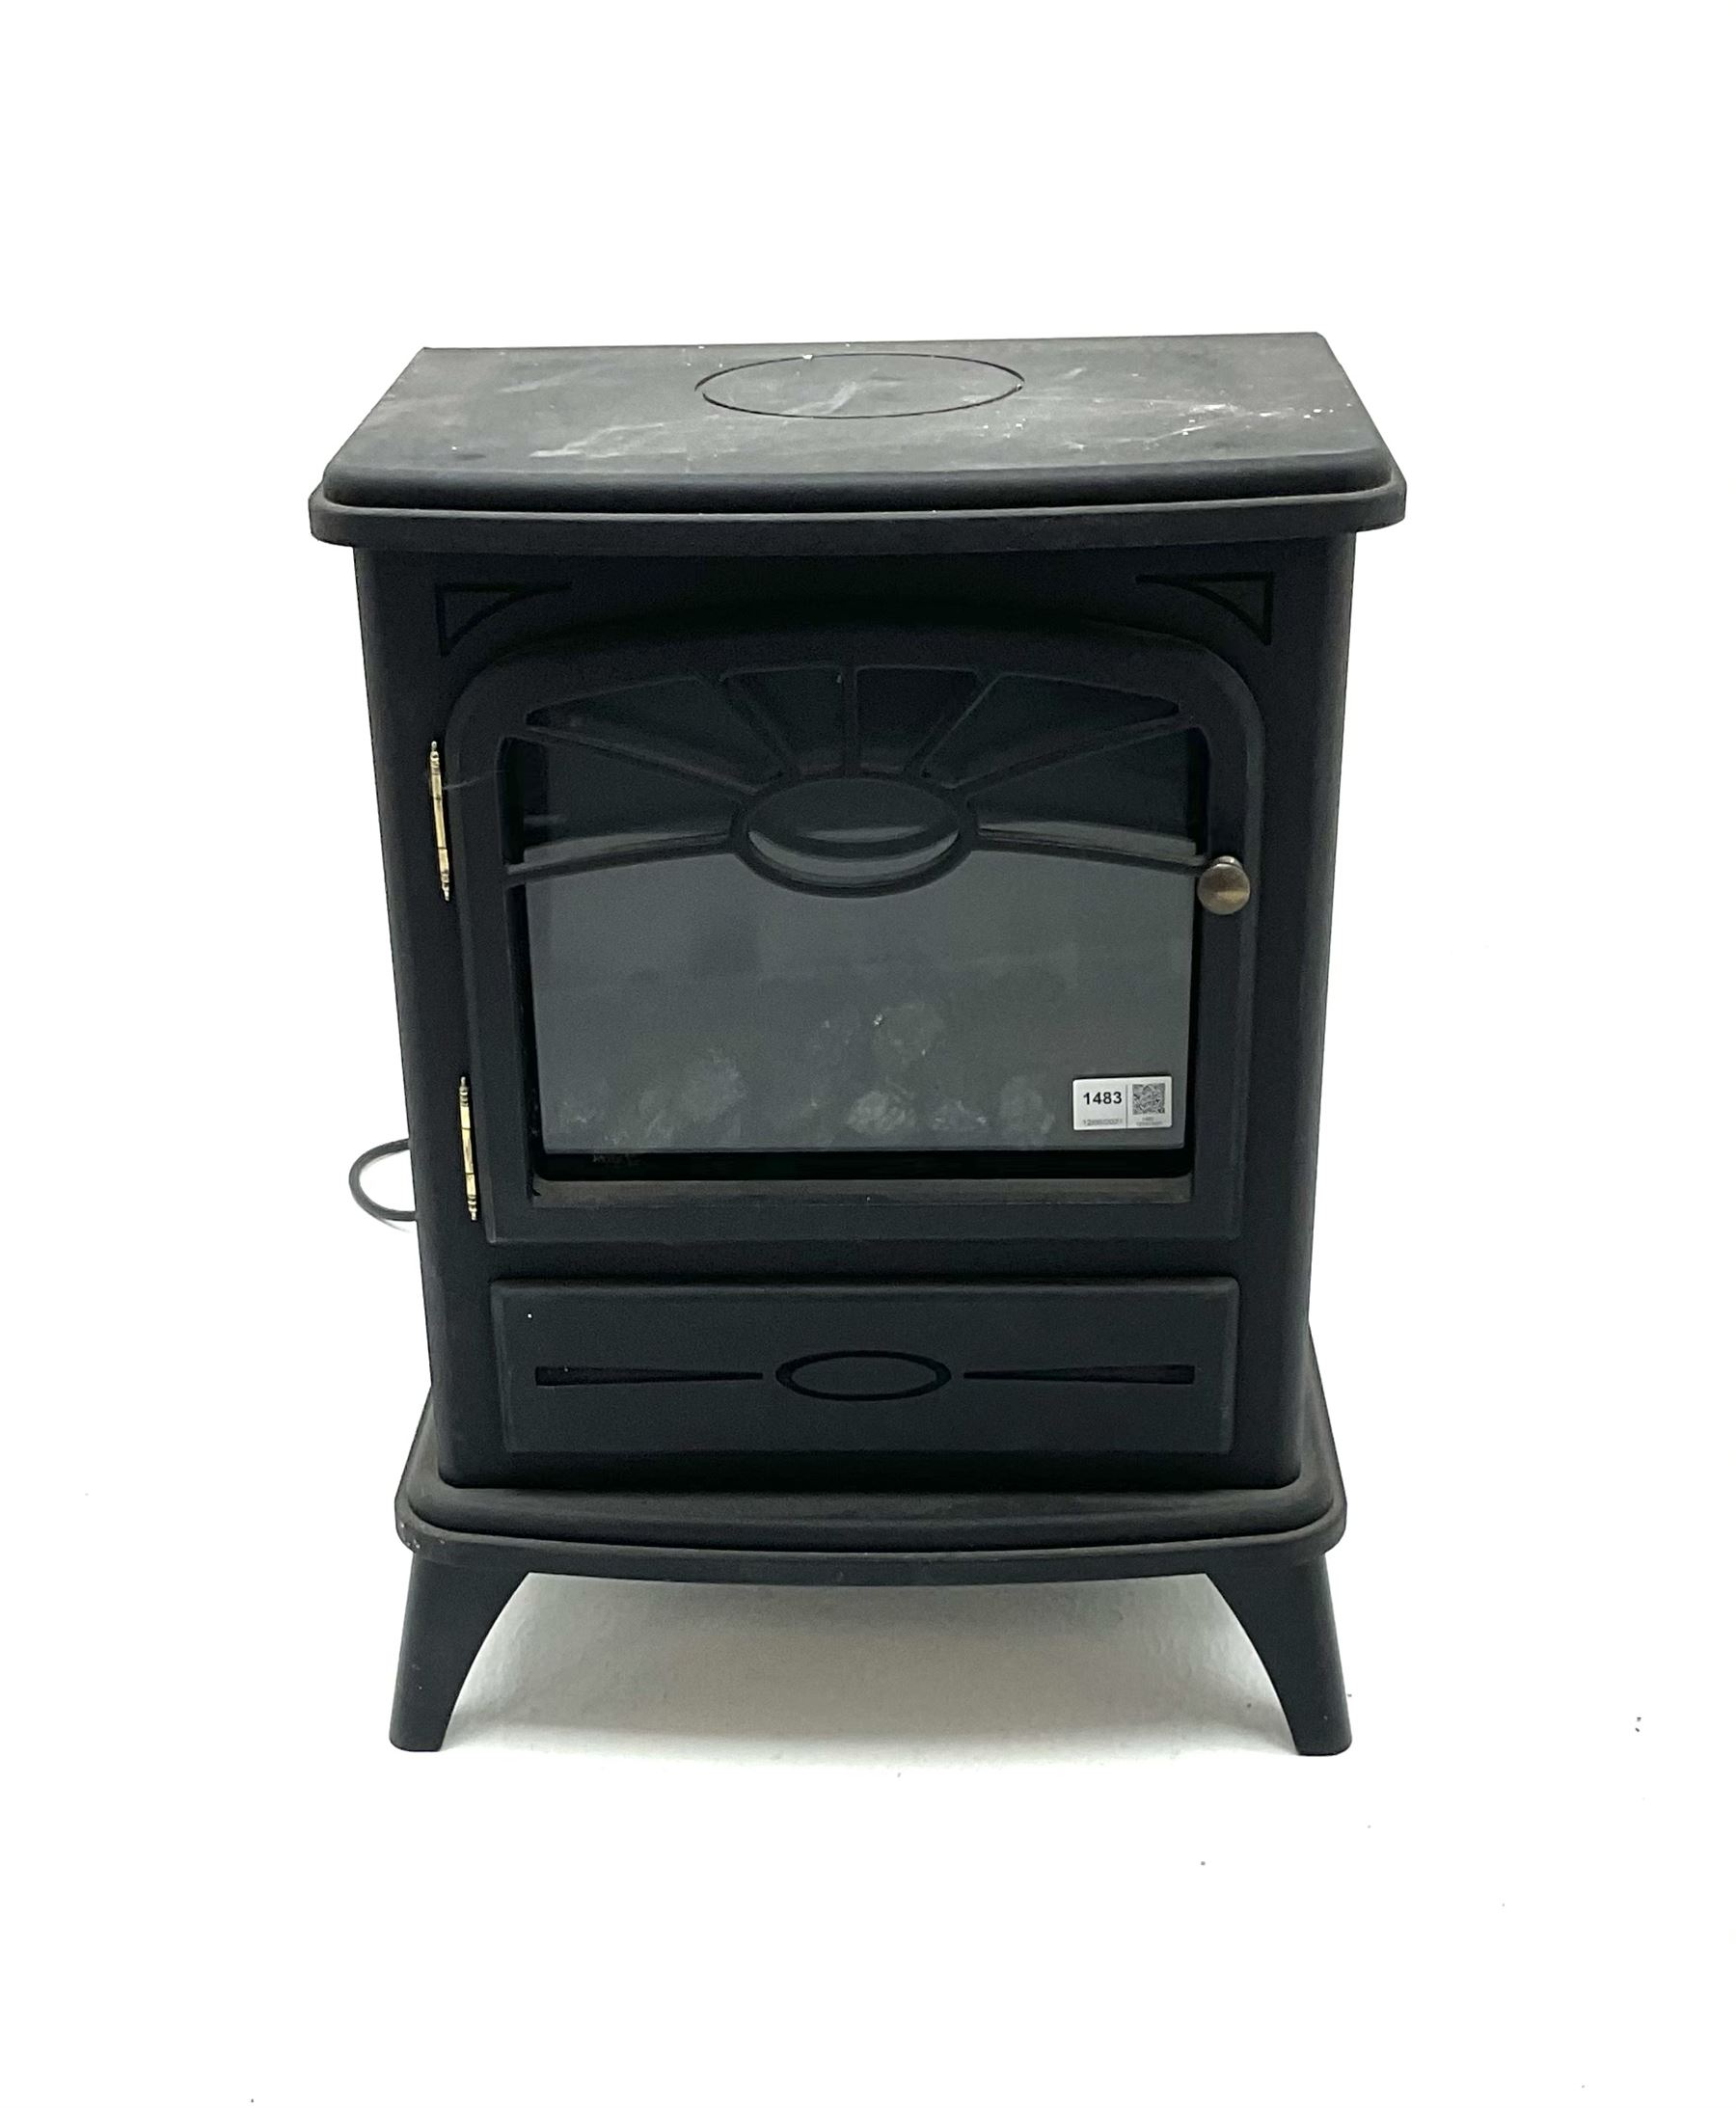 Focal point fires - electric stove